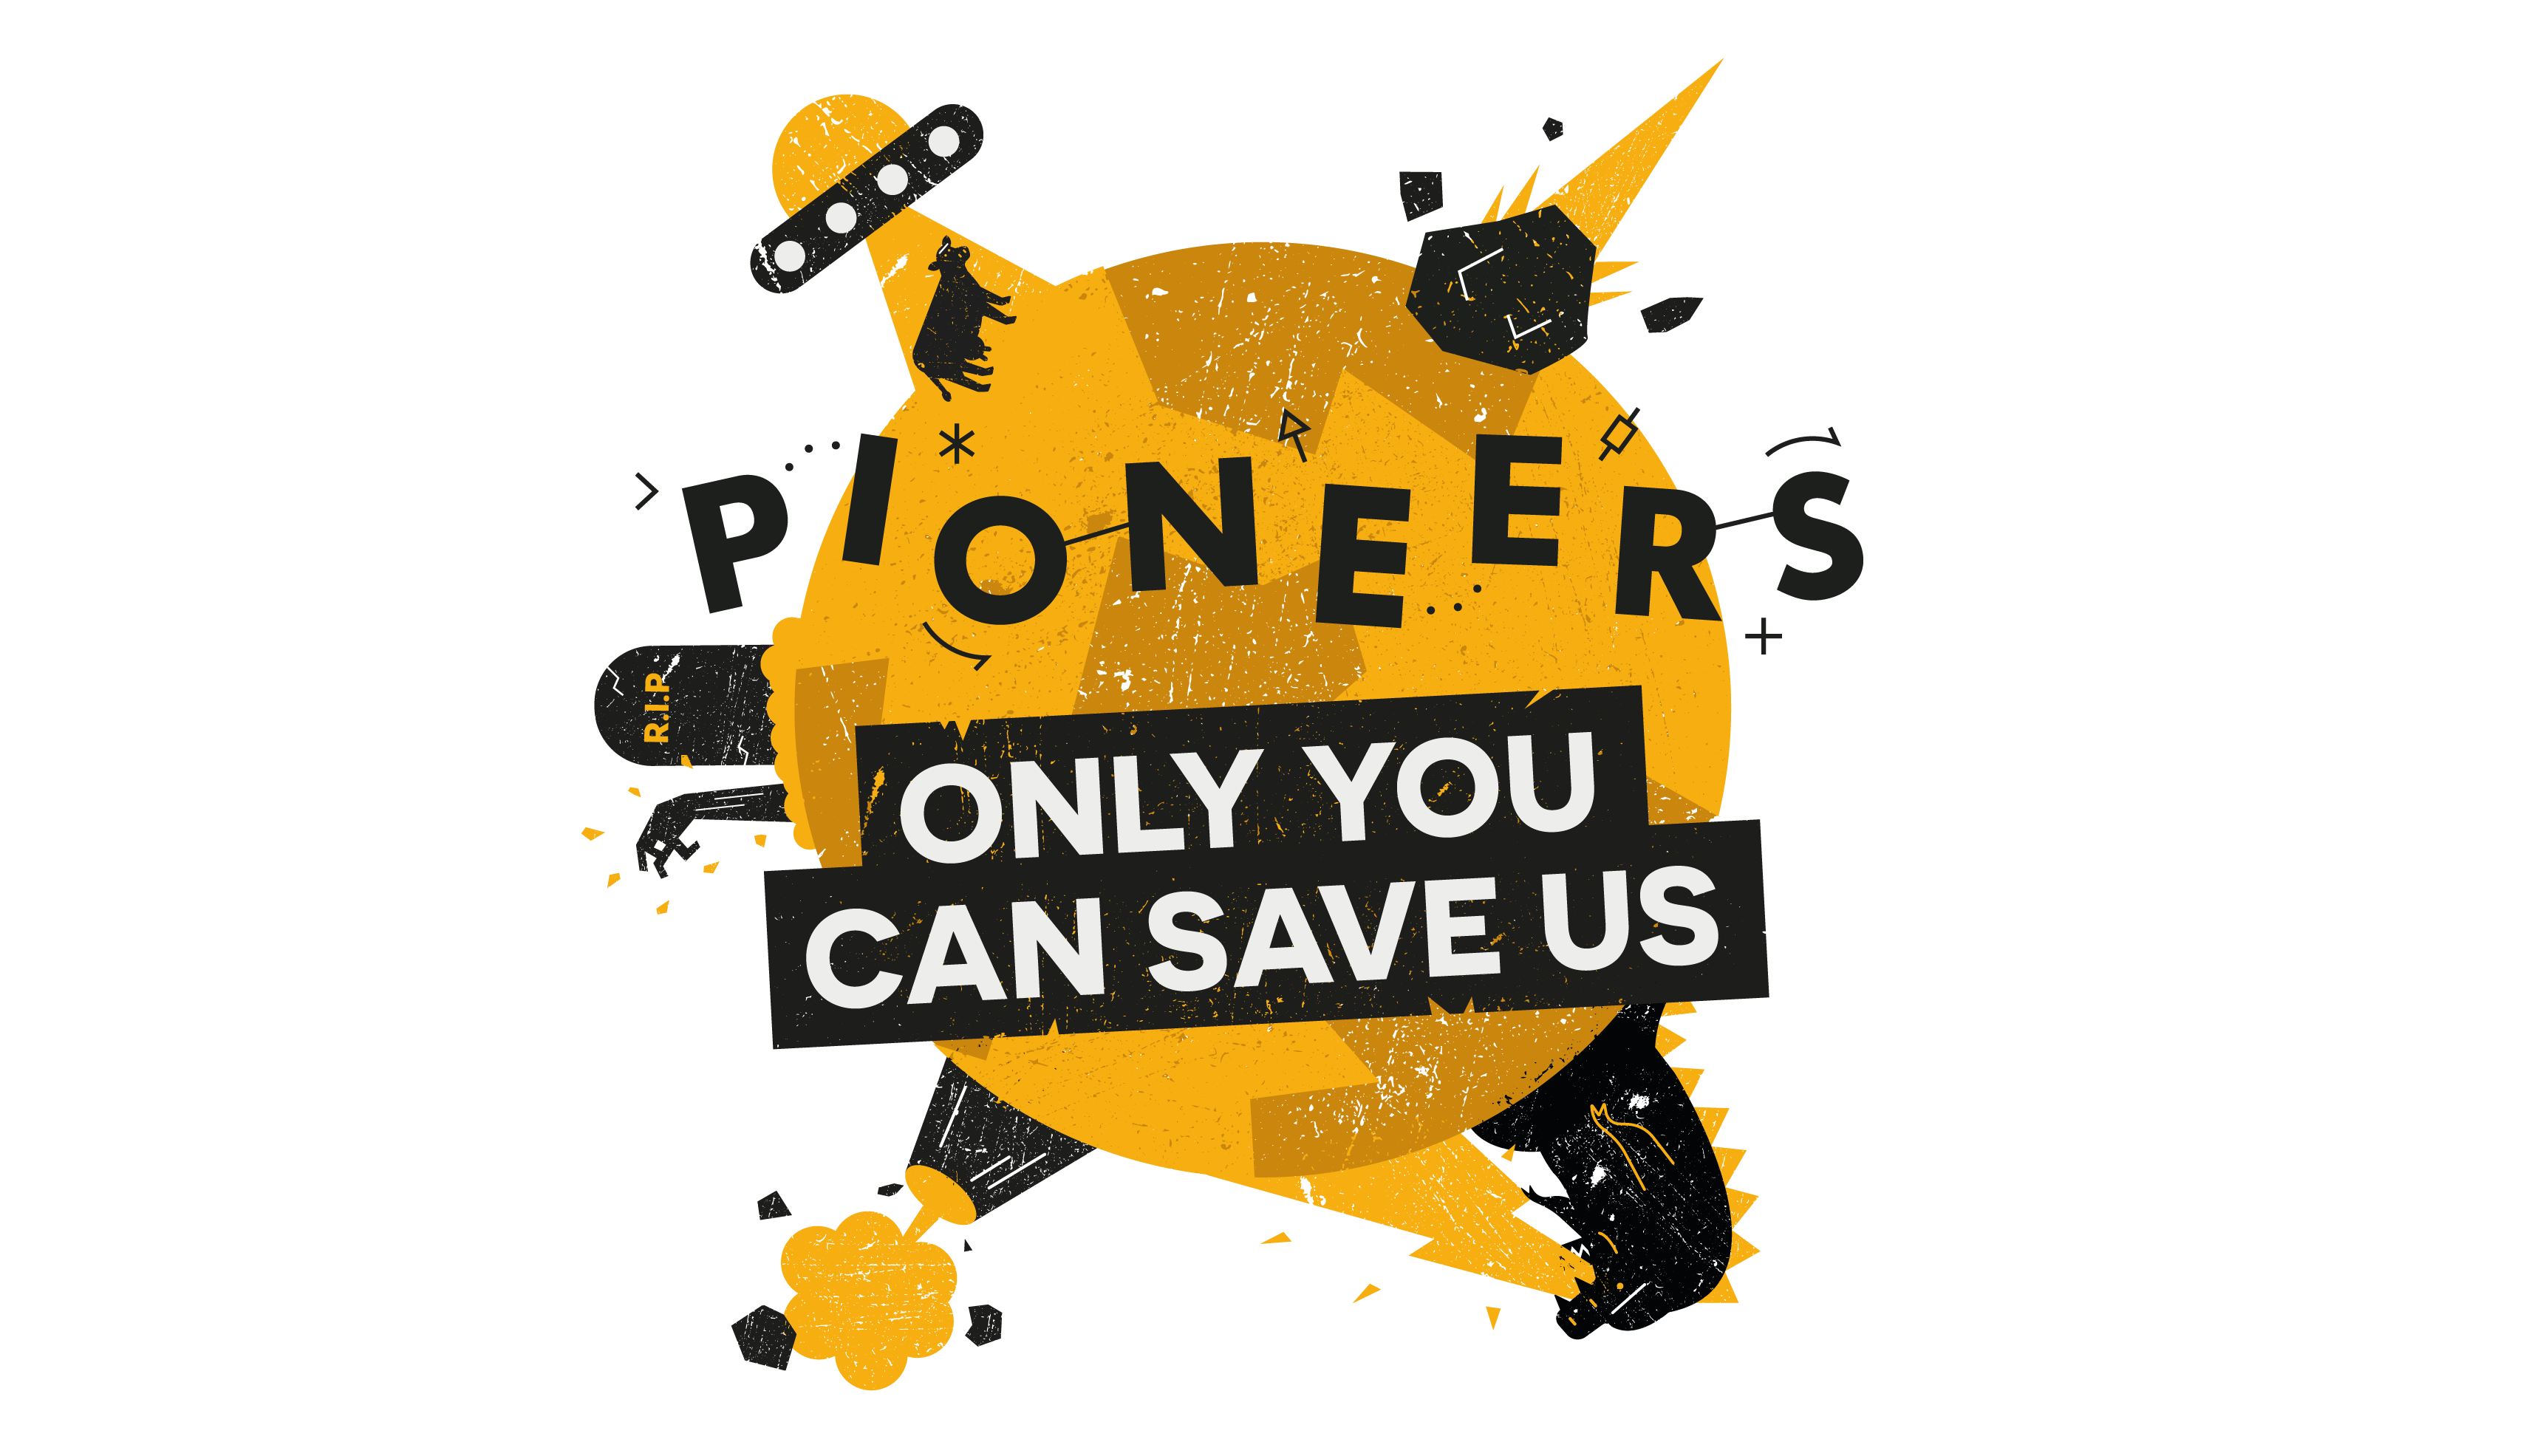 Pioneers winners: only you can save us